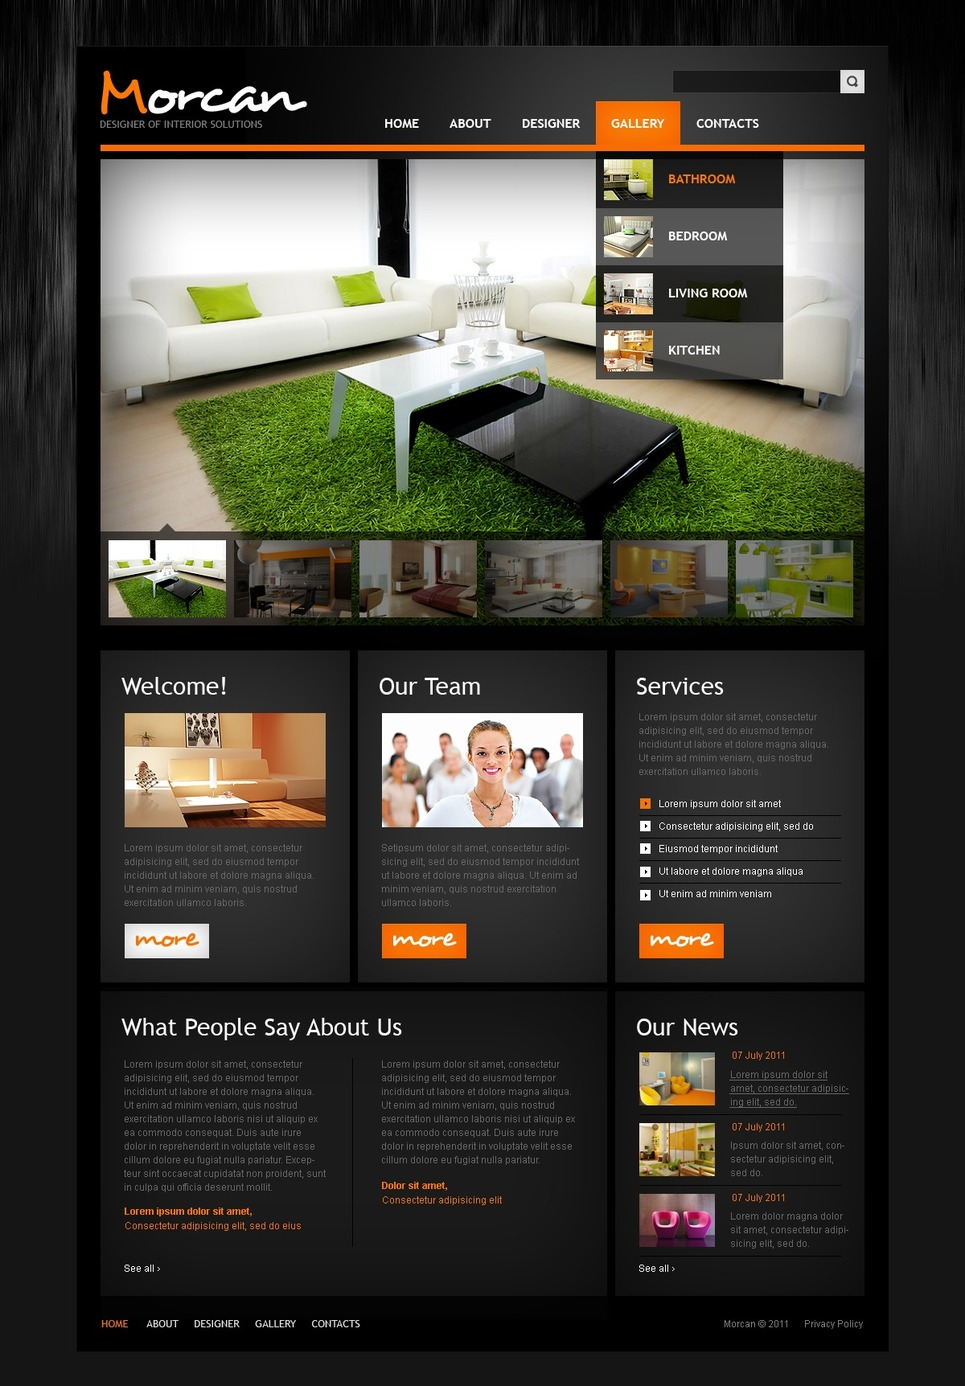 interior design website template 36424. Black Bedroom Furniture Sets. Home Design Ideas